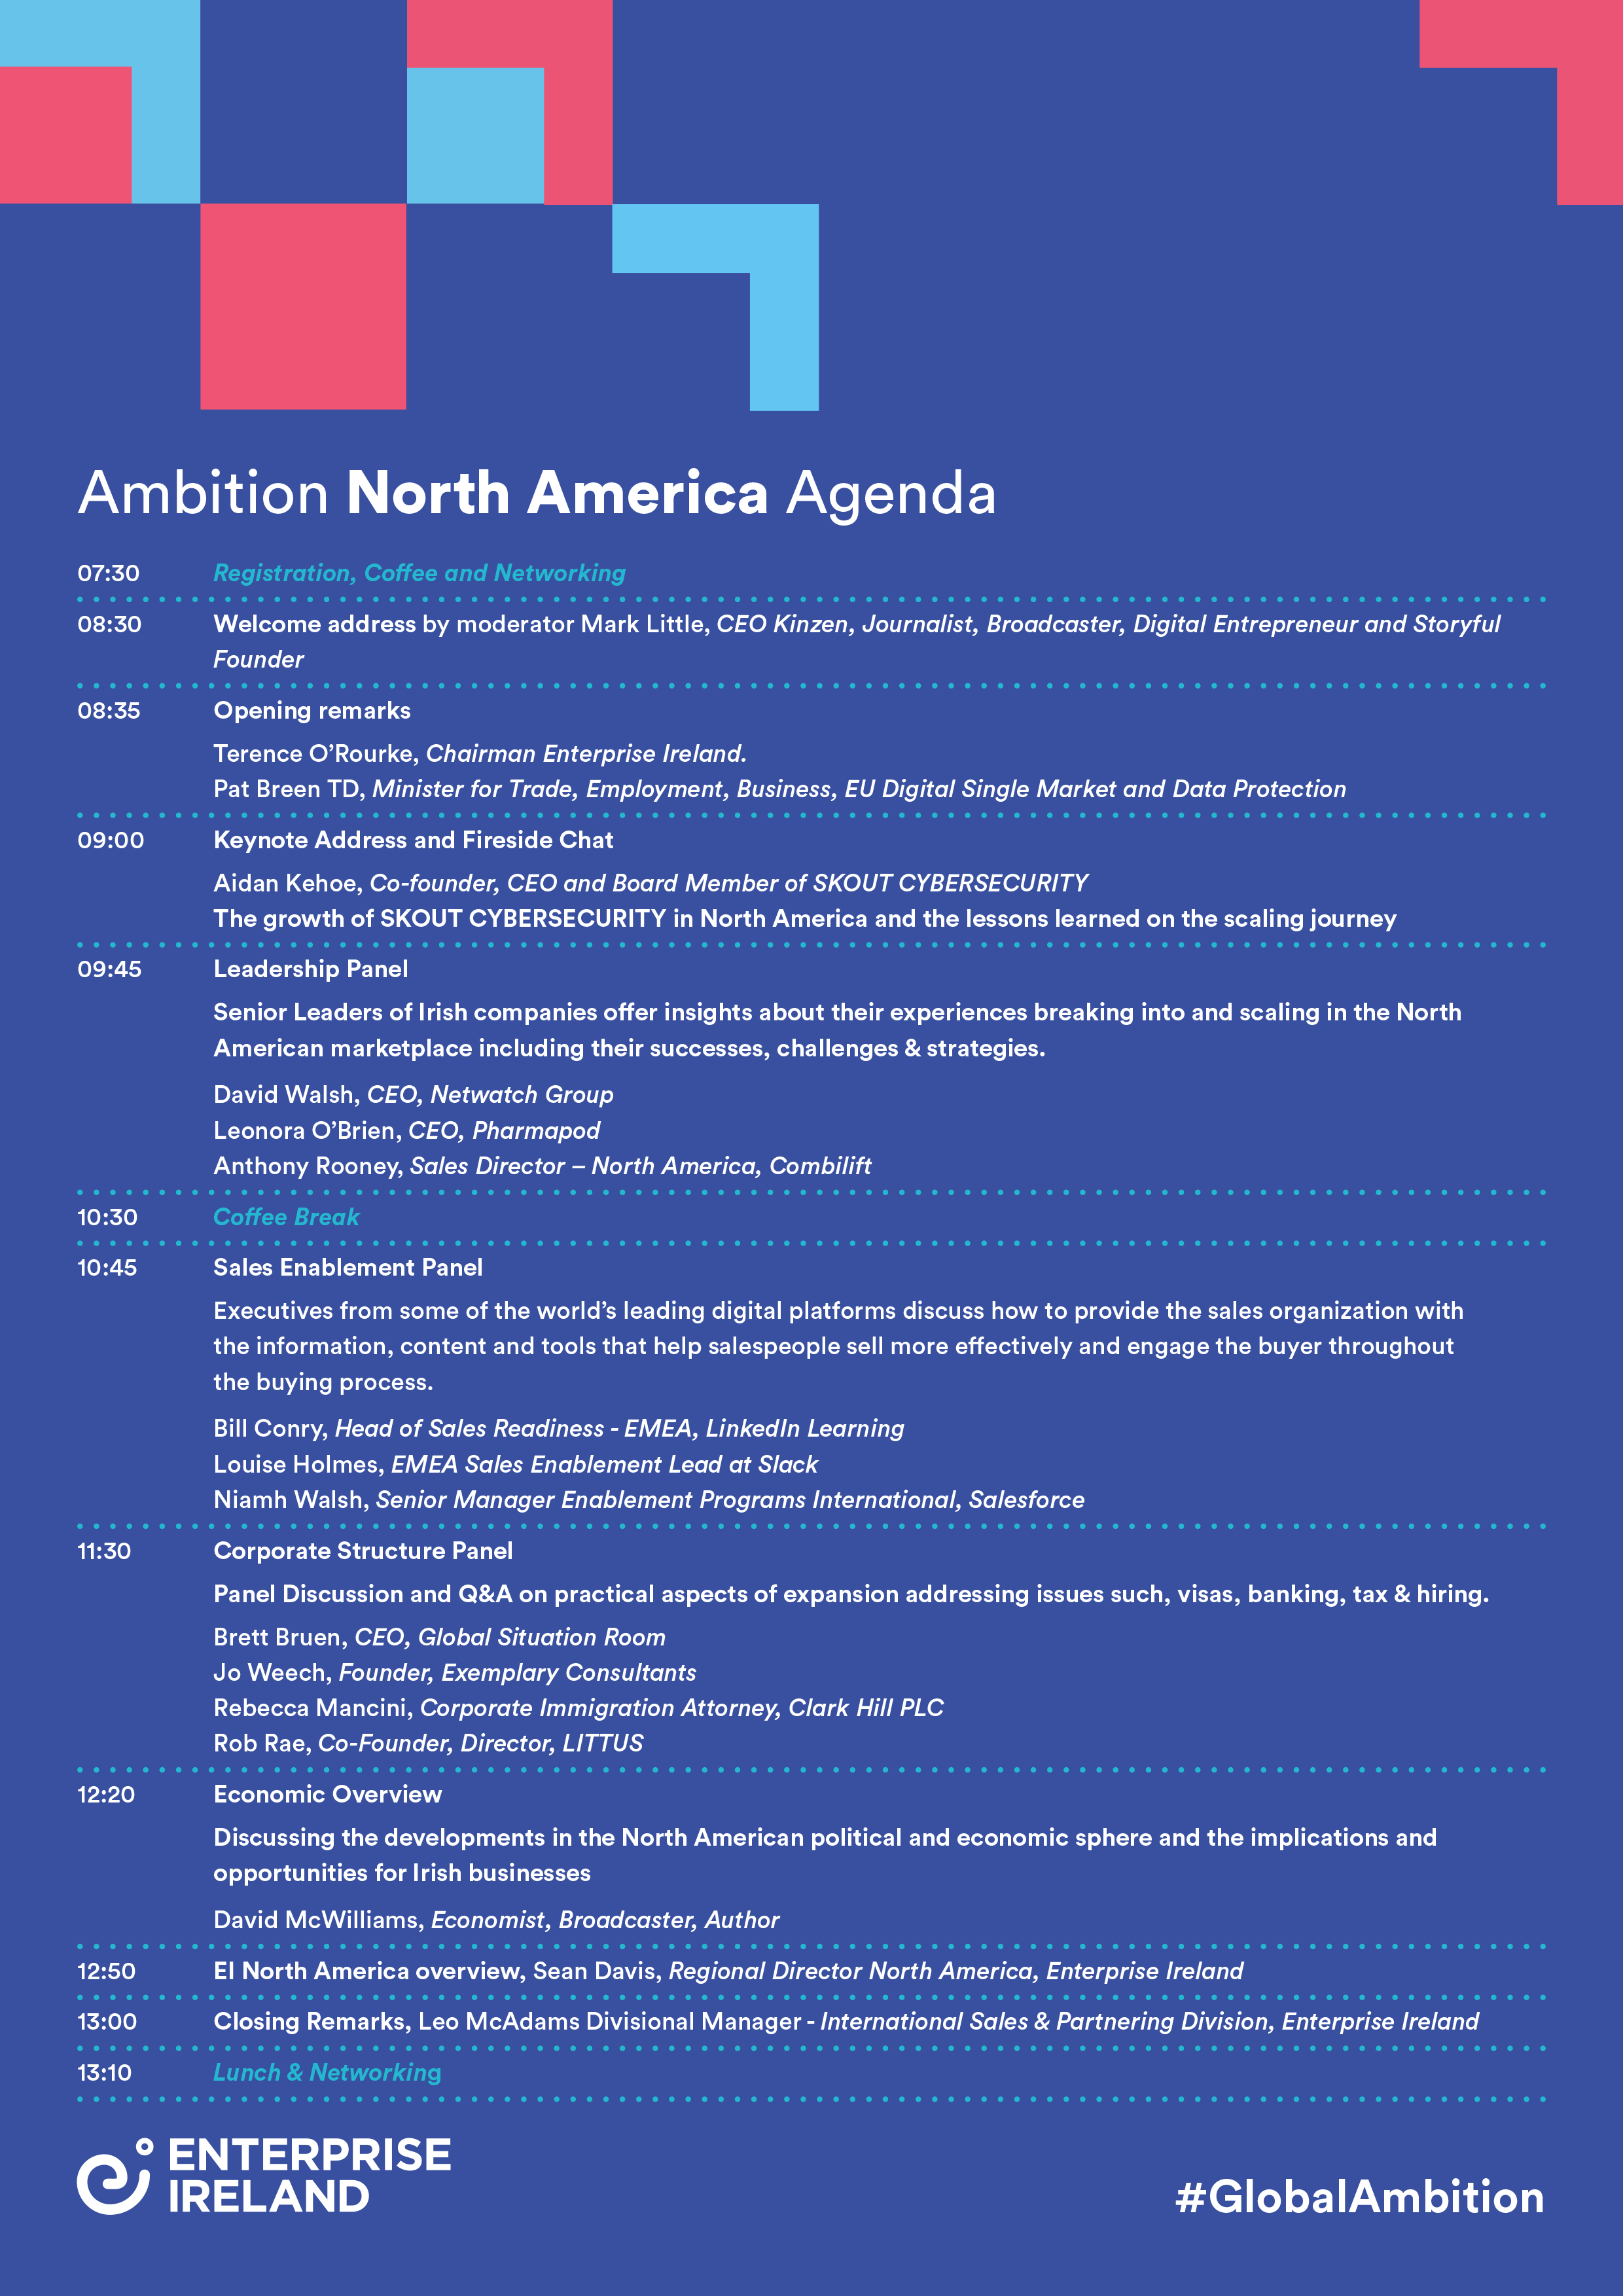 Agenda for Ambition: North America